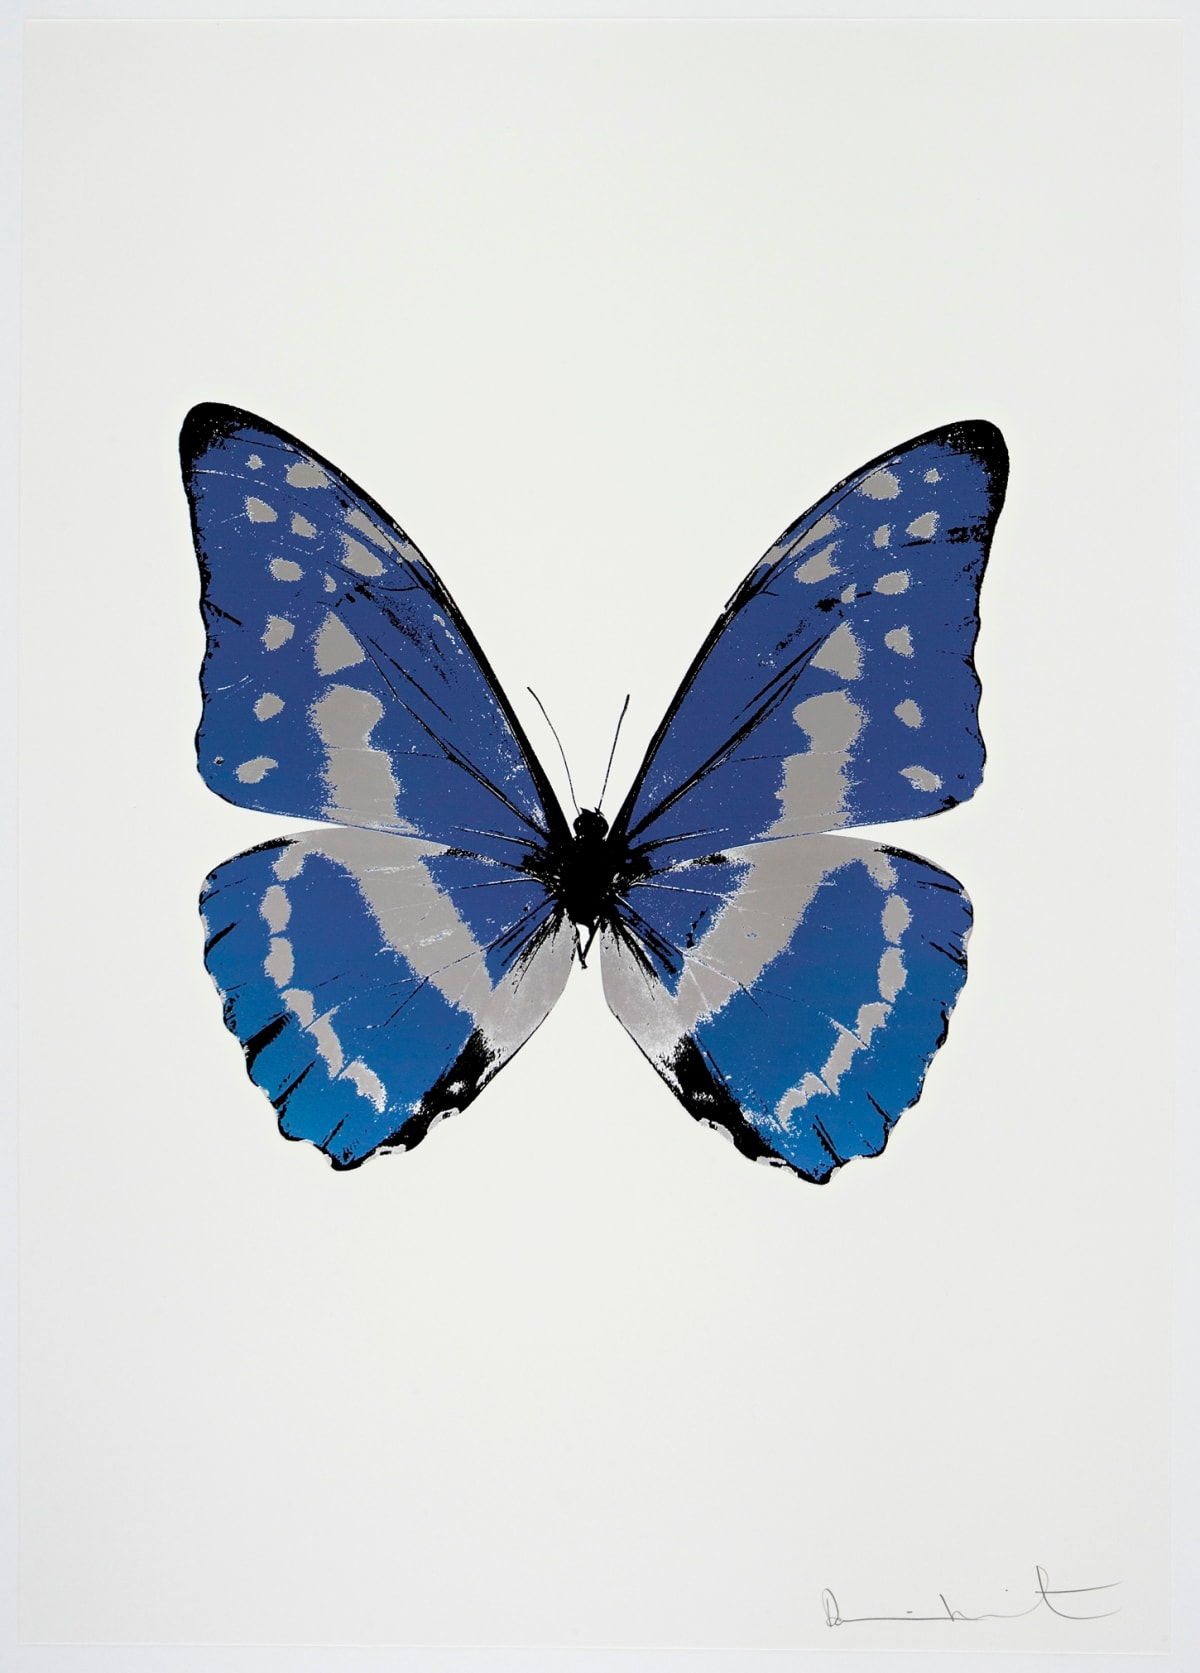 Damien Hirst The Souls III - Frost Blue/Silver Gloss/Raven Black, 2010 3 colour foil block on 300gsm Arches 88 archival paper. Signed and numbered. Published by Paul Stolper and Other Criteria 72 x 51cm OC7942 / 660-45 Edition of 15